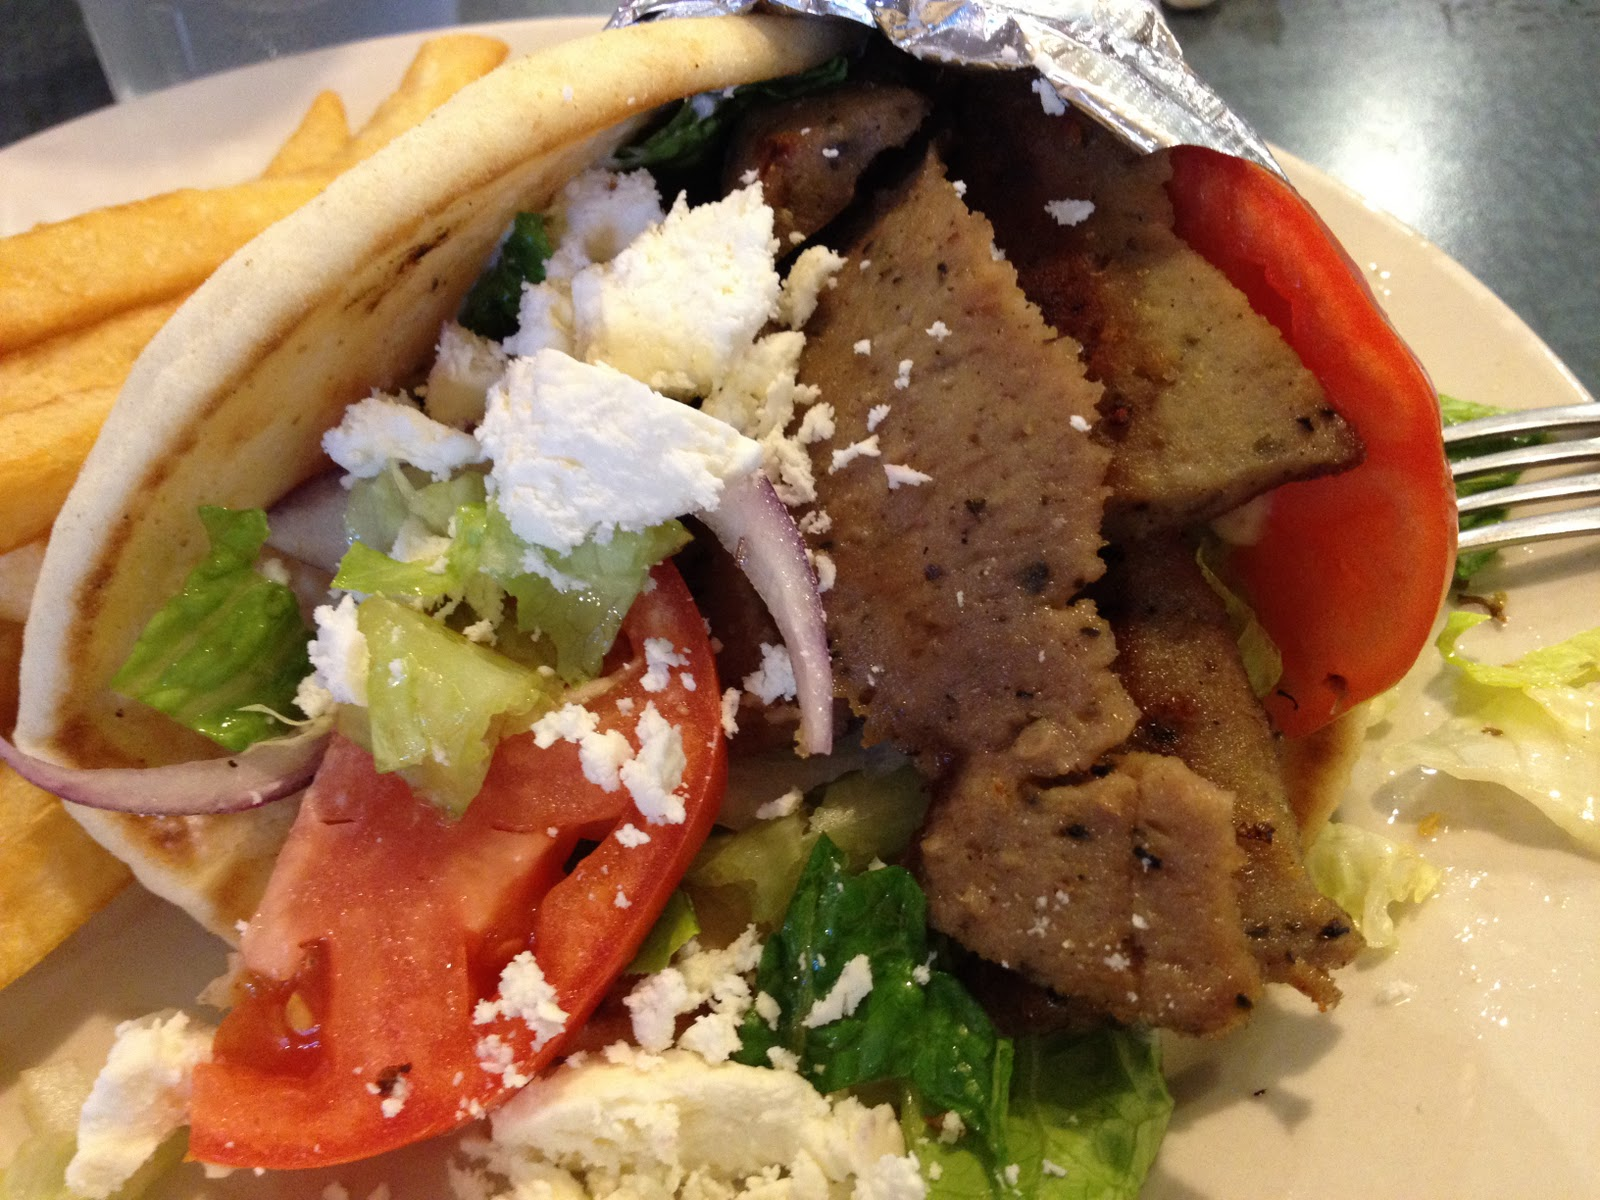 Lamb Gyro Look fast before i delete it,